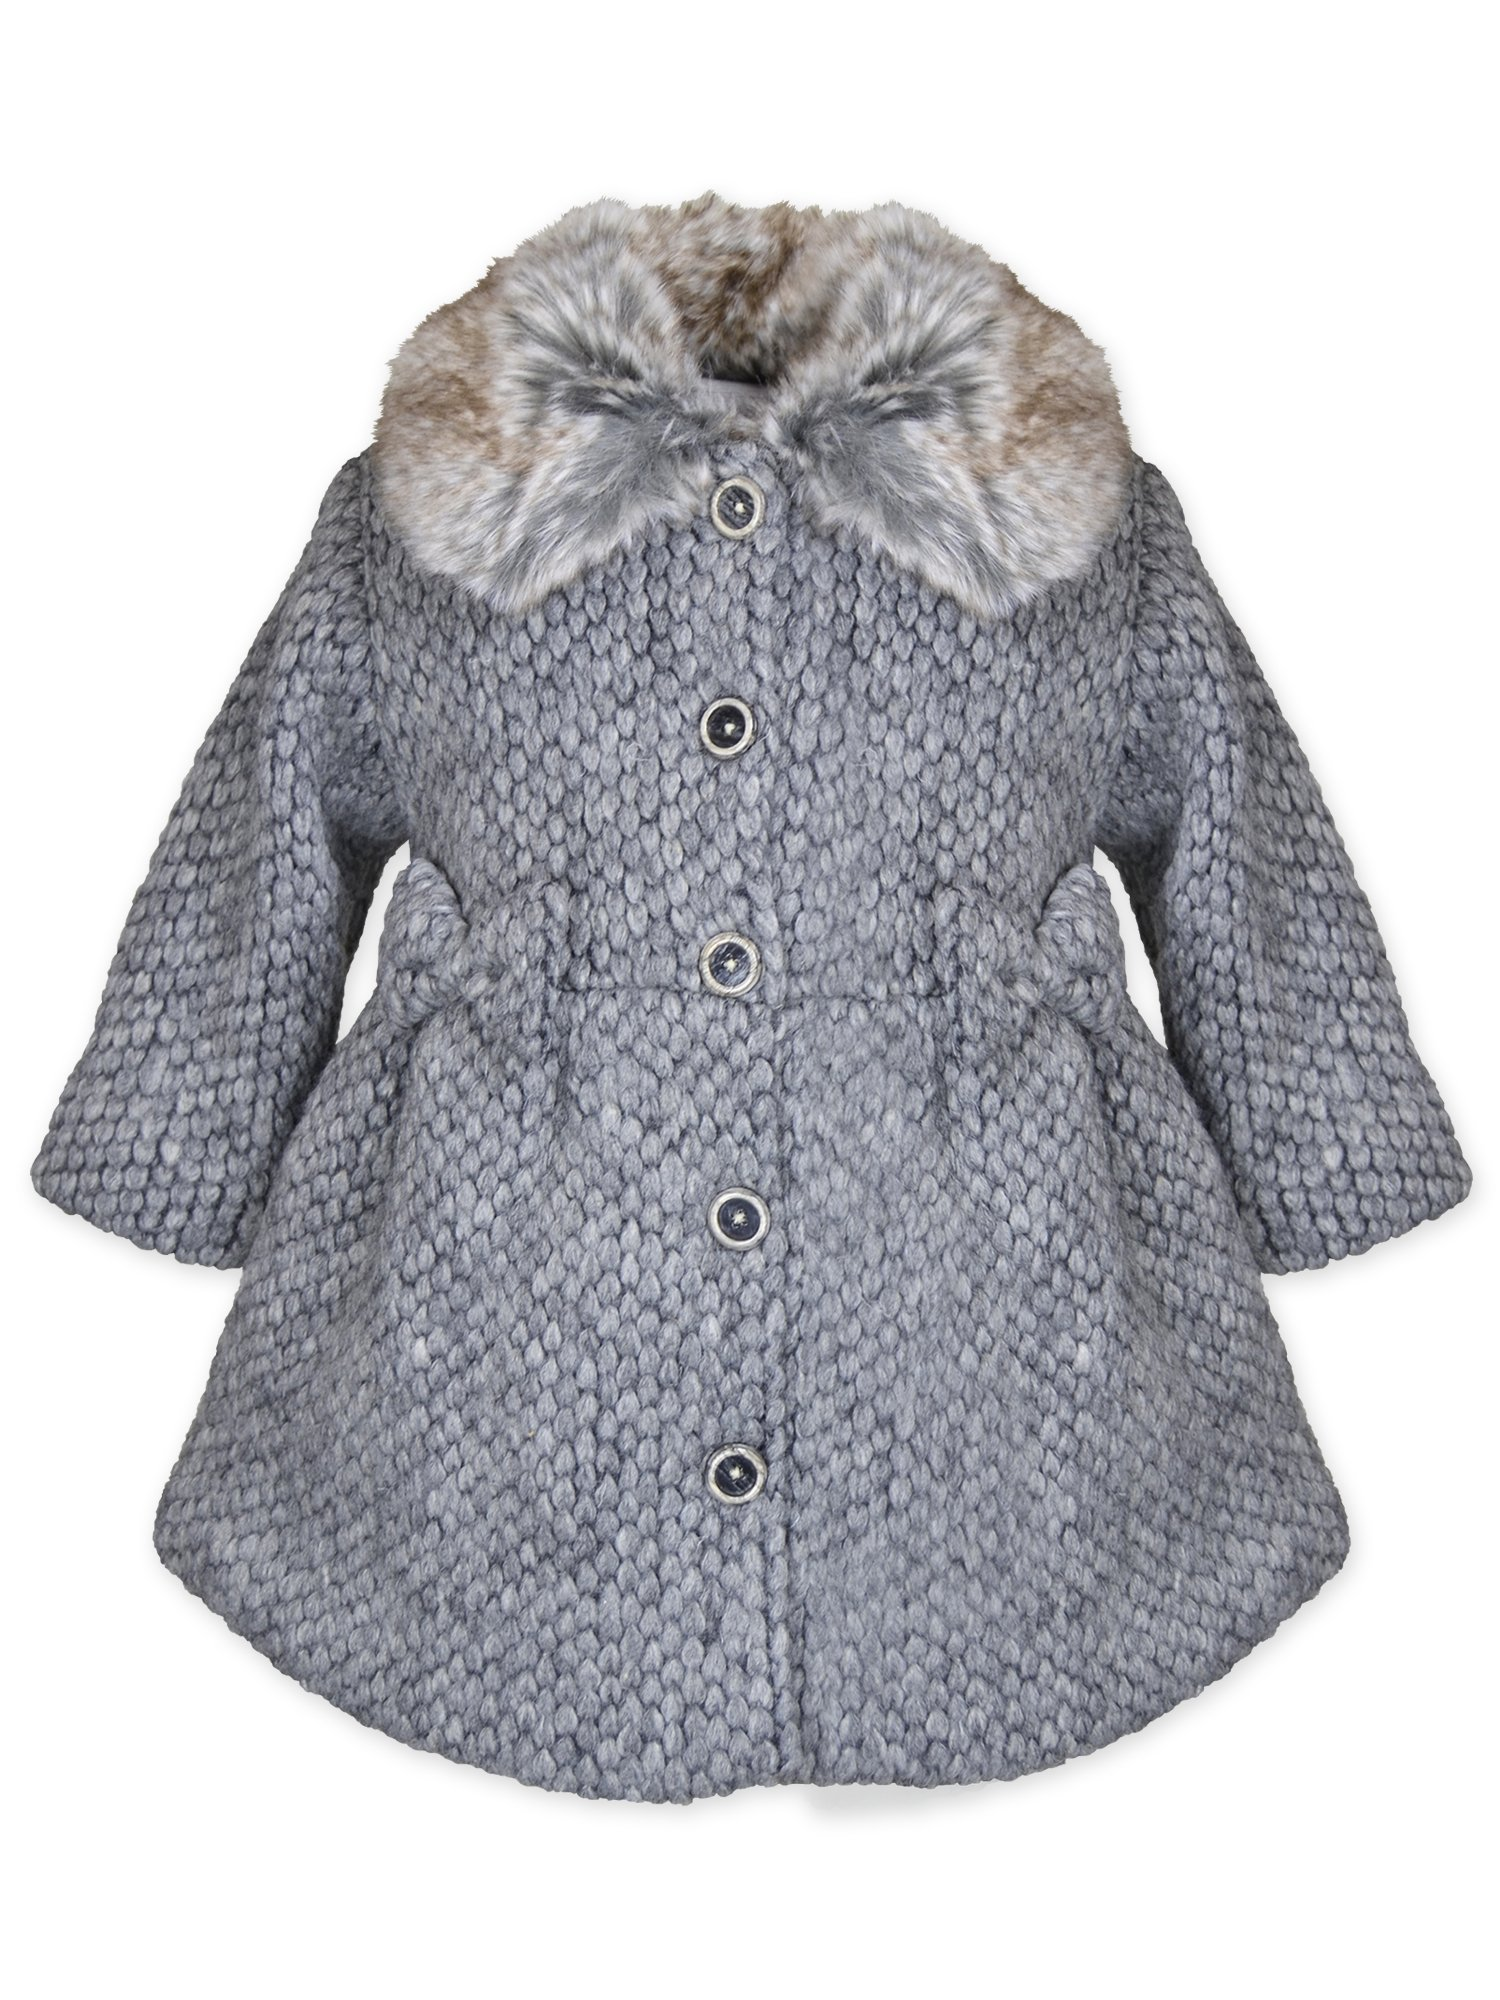 Widgeon Little Girl's Faux Fur Collar Sweater Coat 3730 Outerwear, WSG/Grey Sweater, 6X